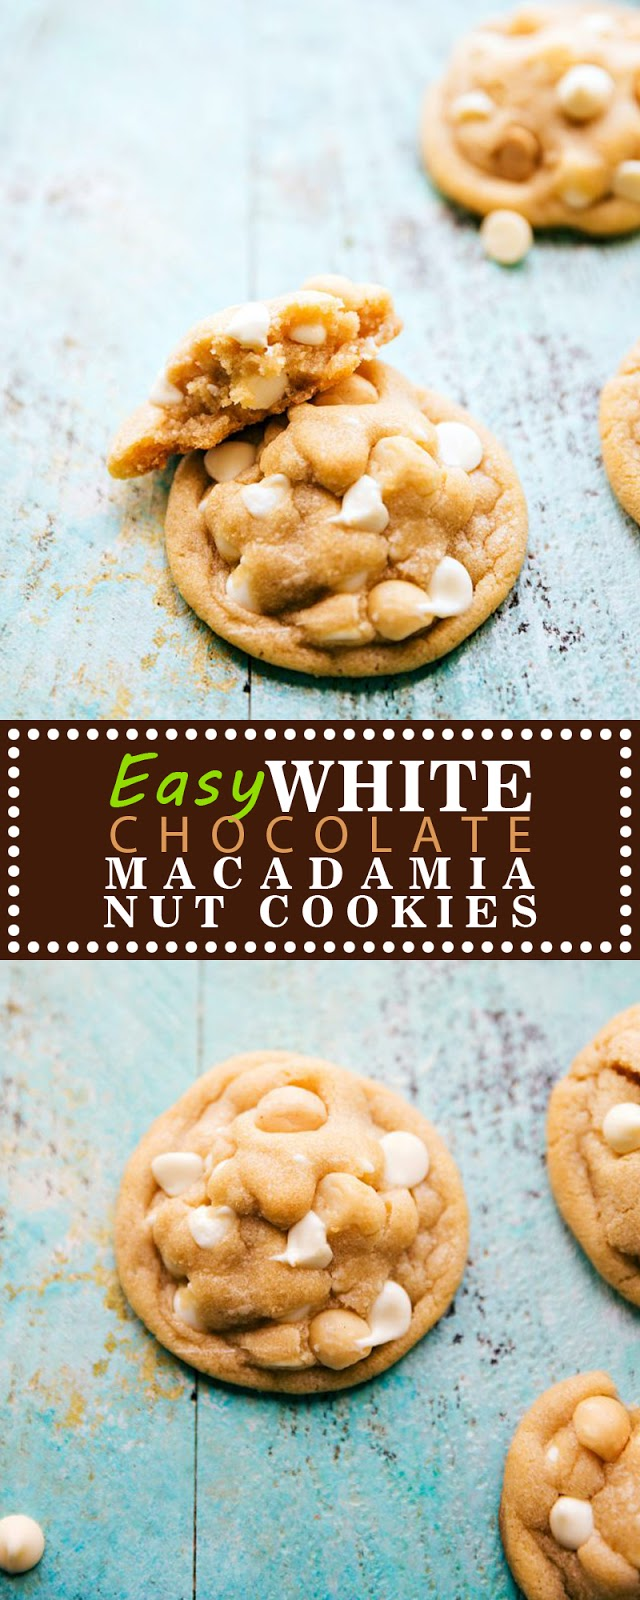 EASY WHITE CHOCOLATE MACADAMIA NUT COOKIES